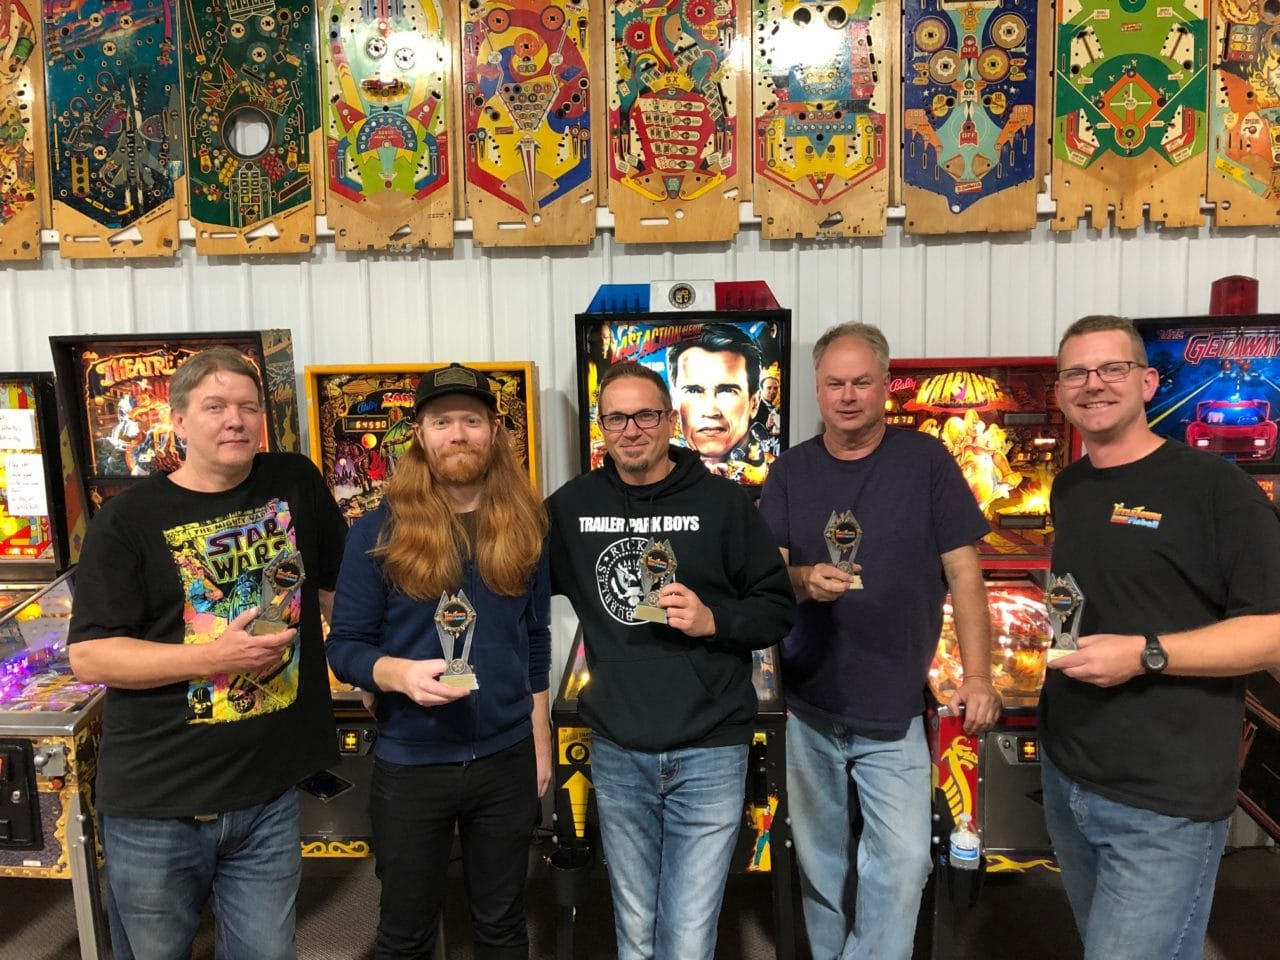 October 2019 Pinball League Top 5 players in Green Bay, WI